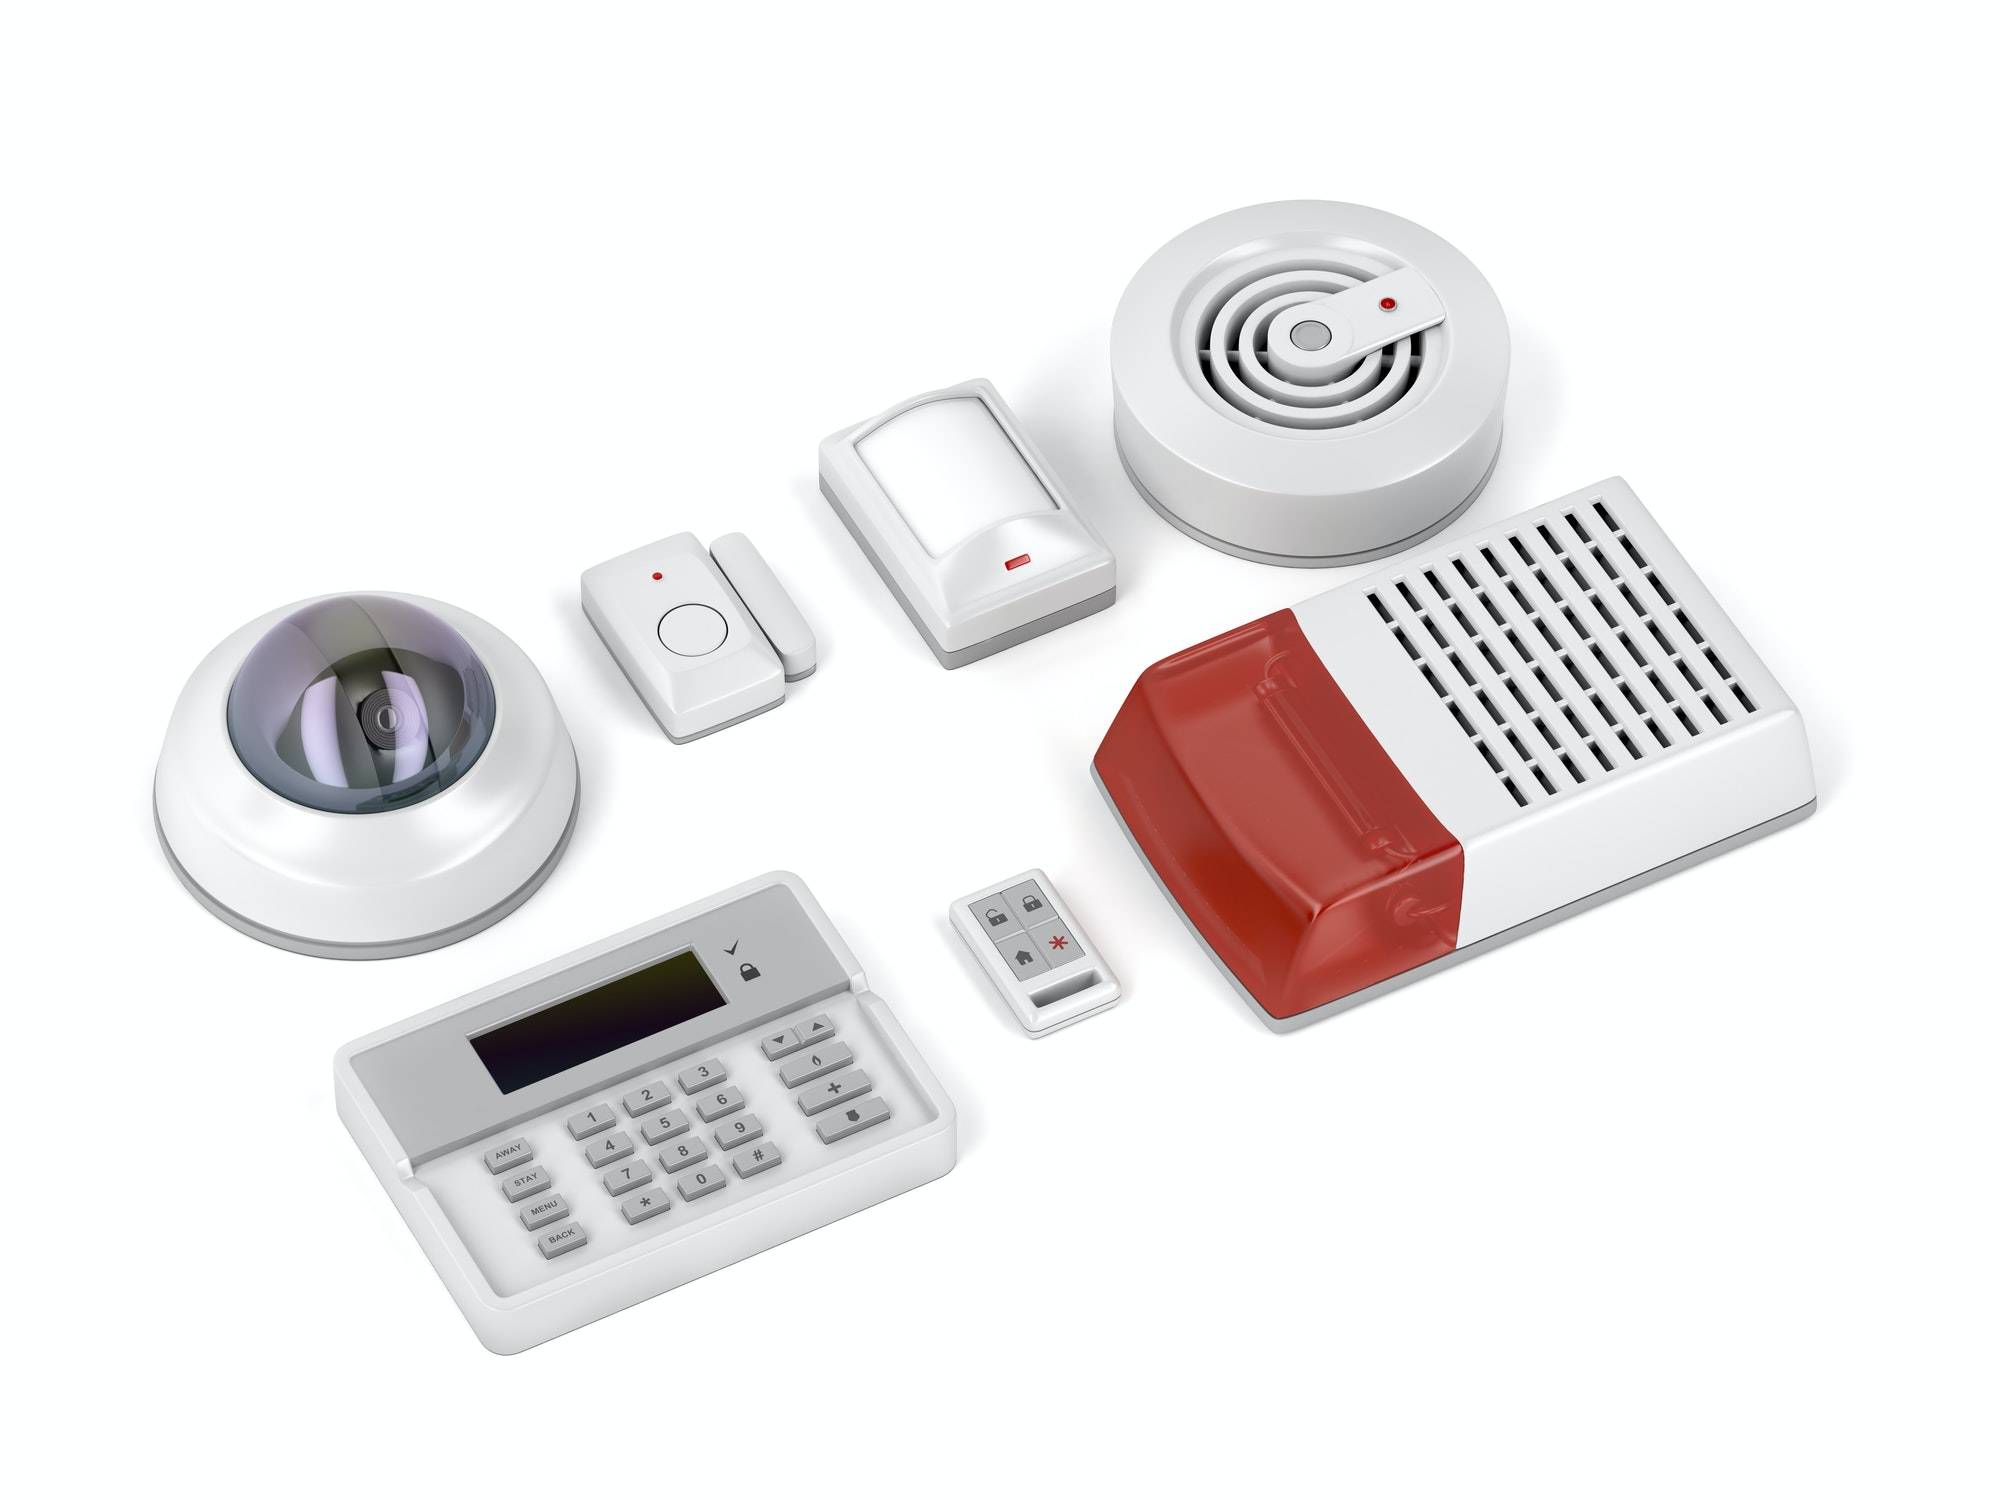 Home security electronic devices